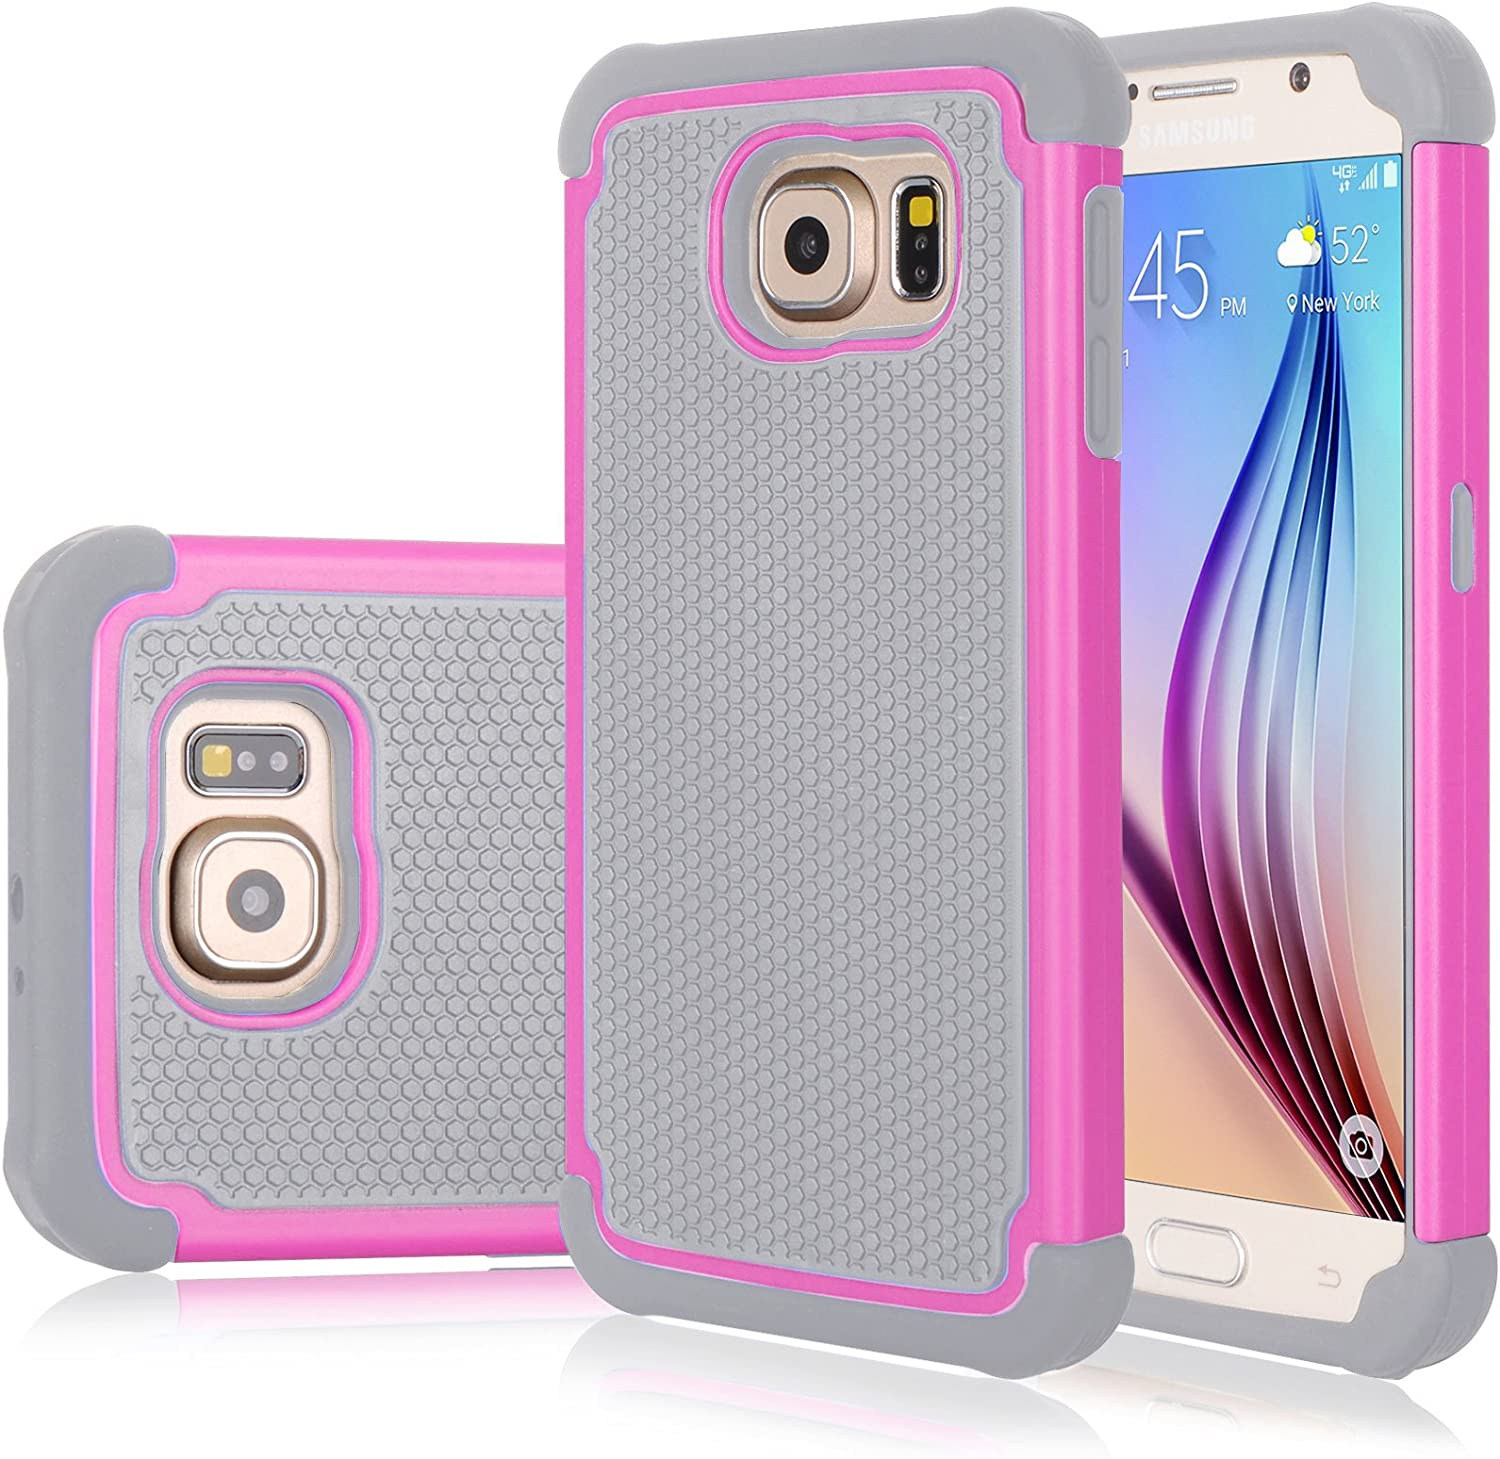 Galaxy S6 Edge Case, Jeylly(TM) [Shock Proof] Scratch Absorbing Hybrid Rubber Plastic Impact Defender Rugged Slim Hard Case Cover Shell for Samsung Galaxy S6 Edge S VI Edge G925 (Pink/Grey)